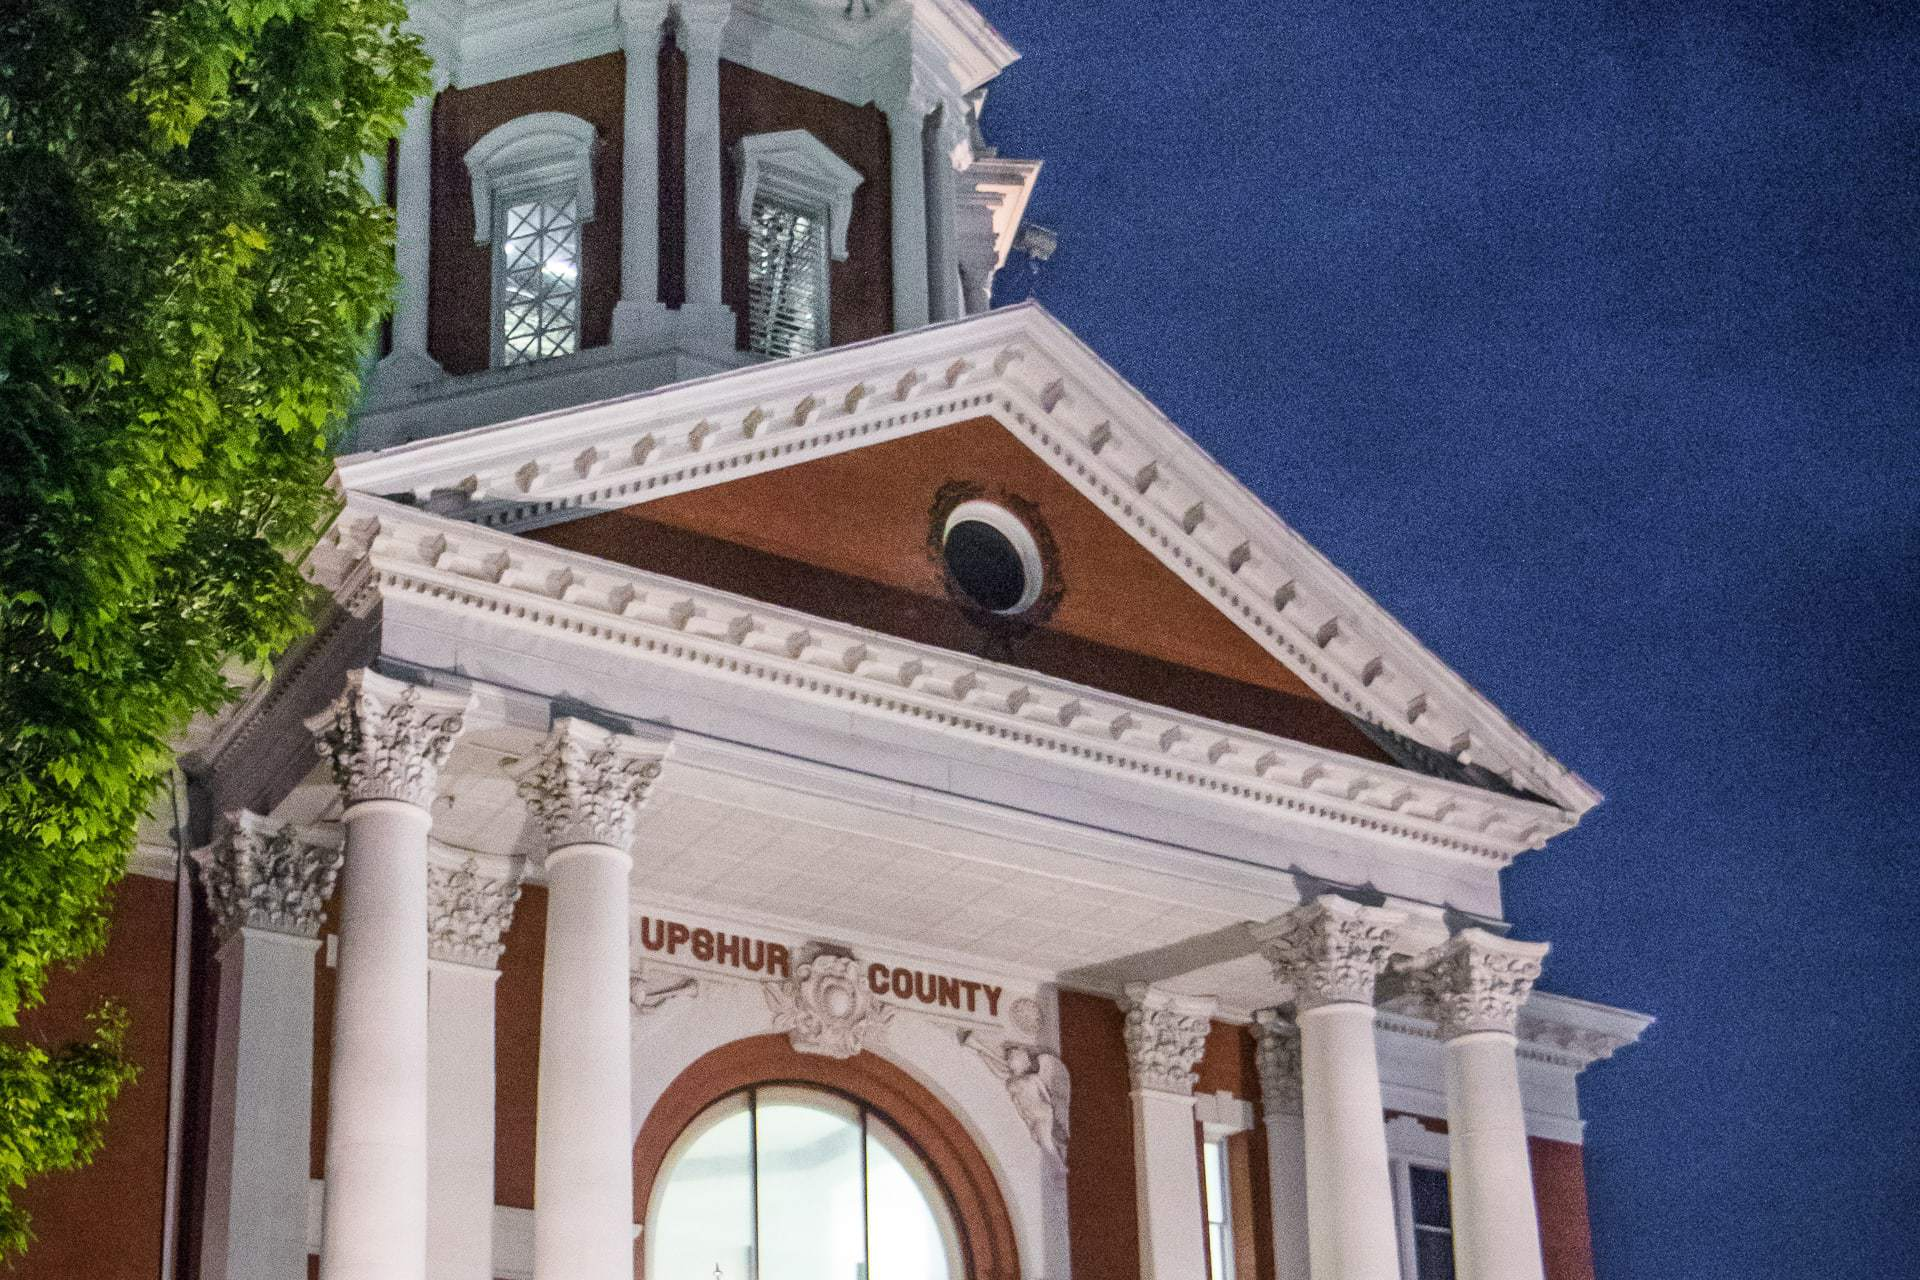 Emergency meeting: Upshur County Courthouse closed until Oct. 21